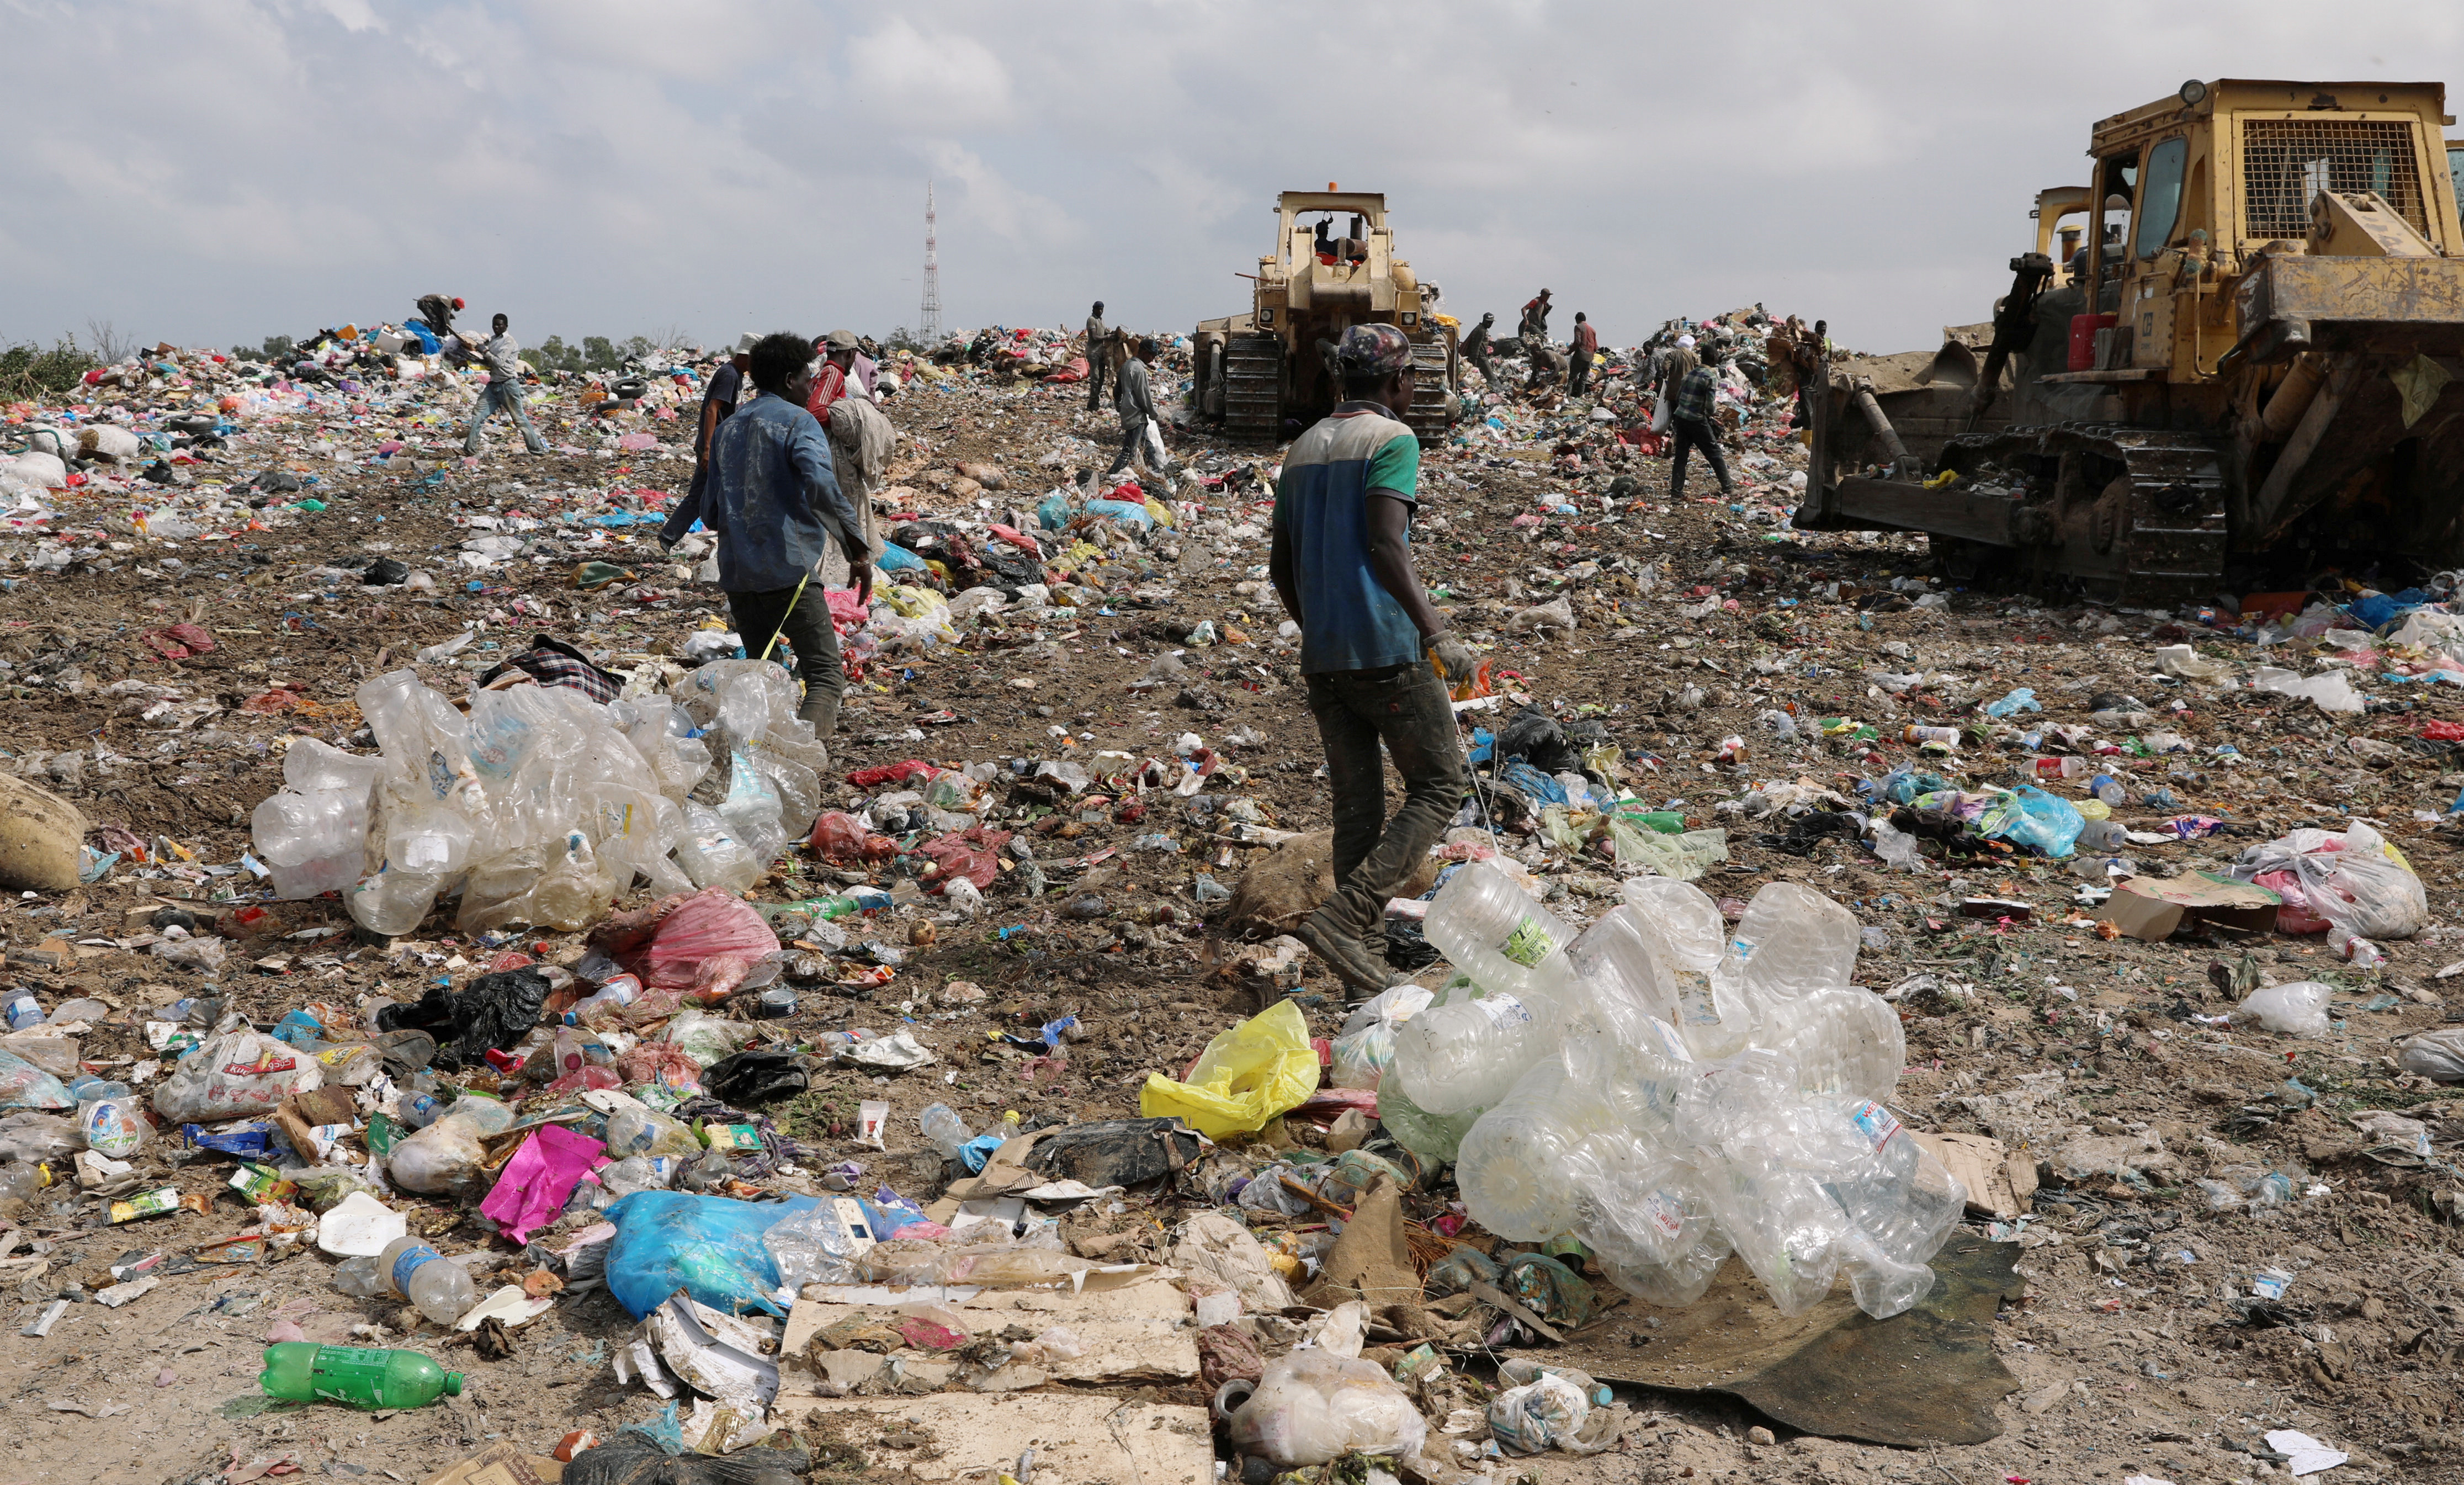 Garbage pickers collect recyclable materials at a rubbish dump in Tripoli, Libya October 12, 2019. Picture taken October 12, 2019. REUTERS/Ismail Zitouny - RC1601EFFE50